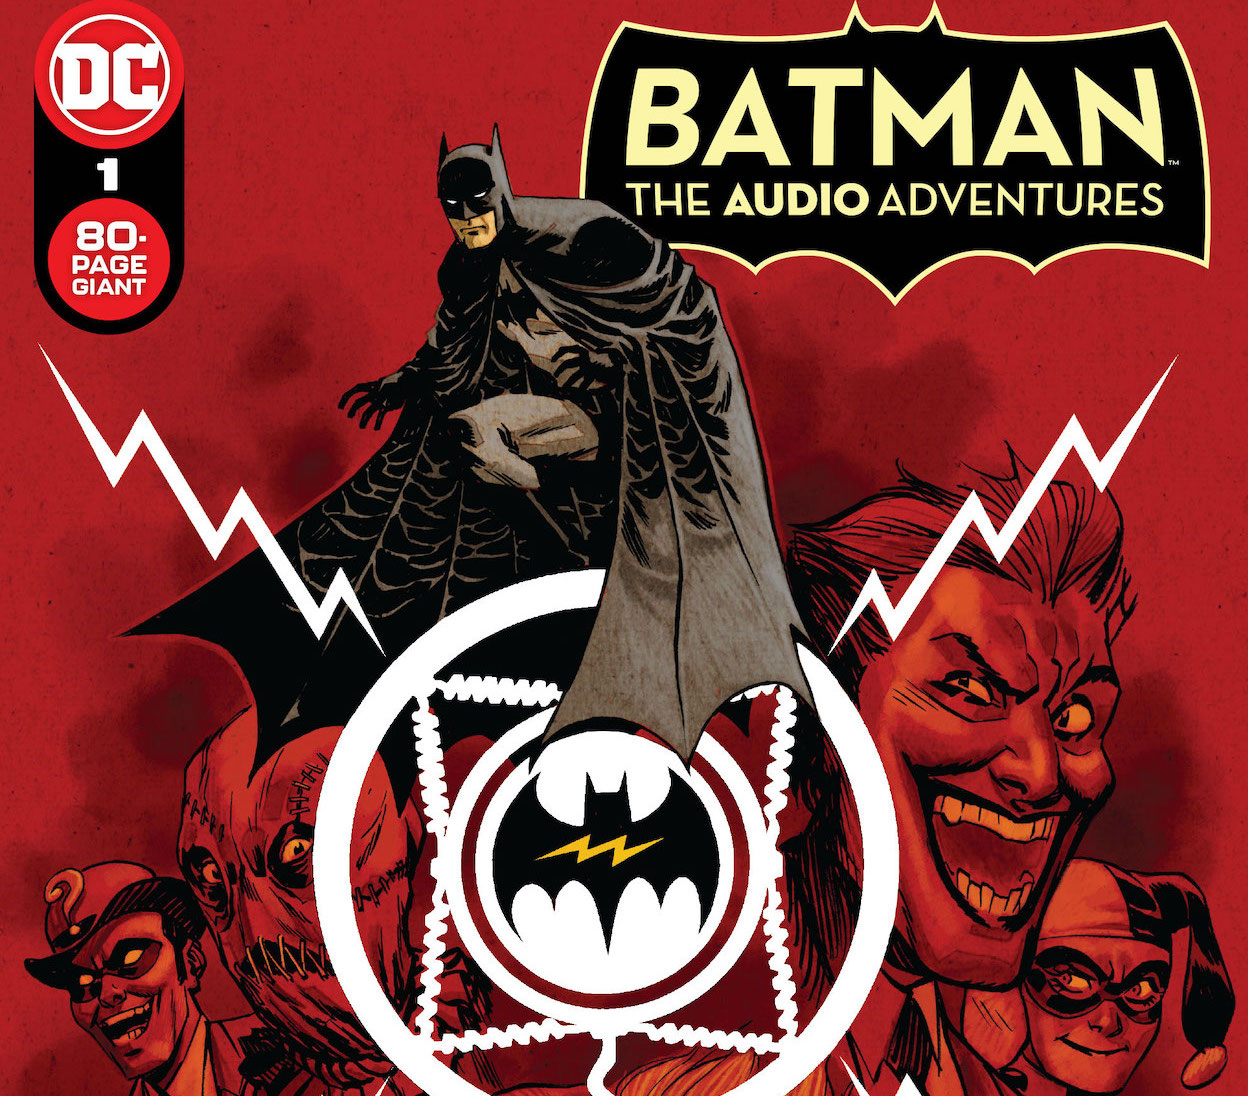 'Batman: The Audio Adventures Special' #1 is having a lot of fun